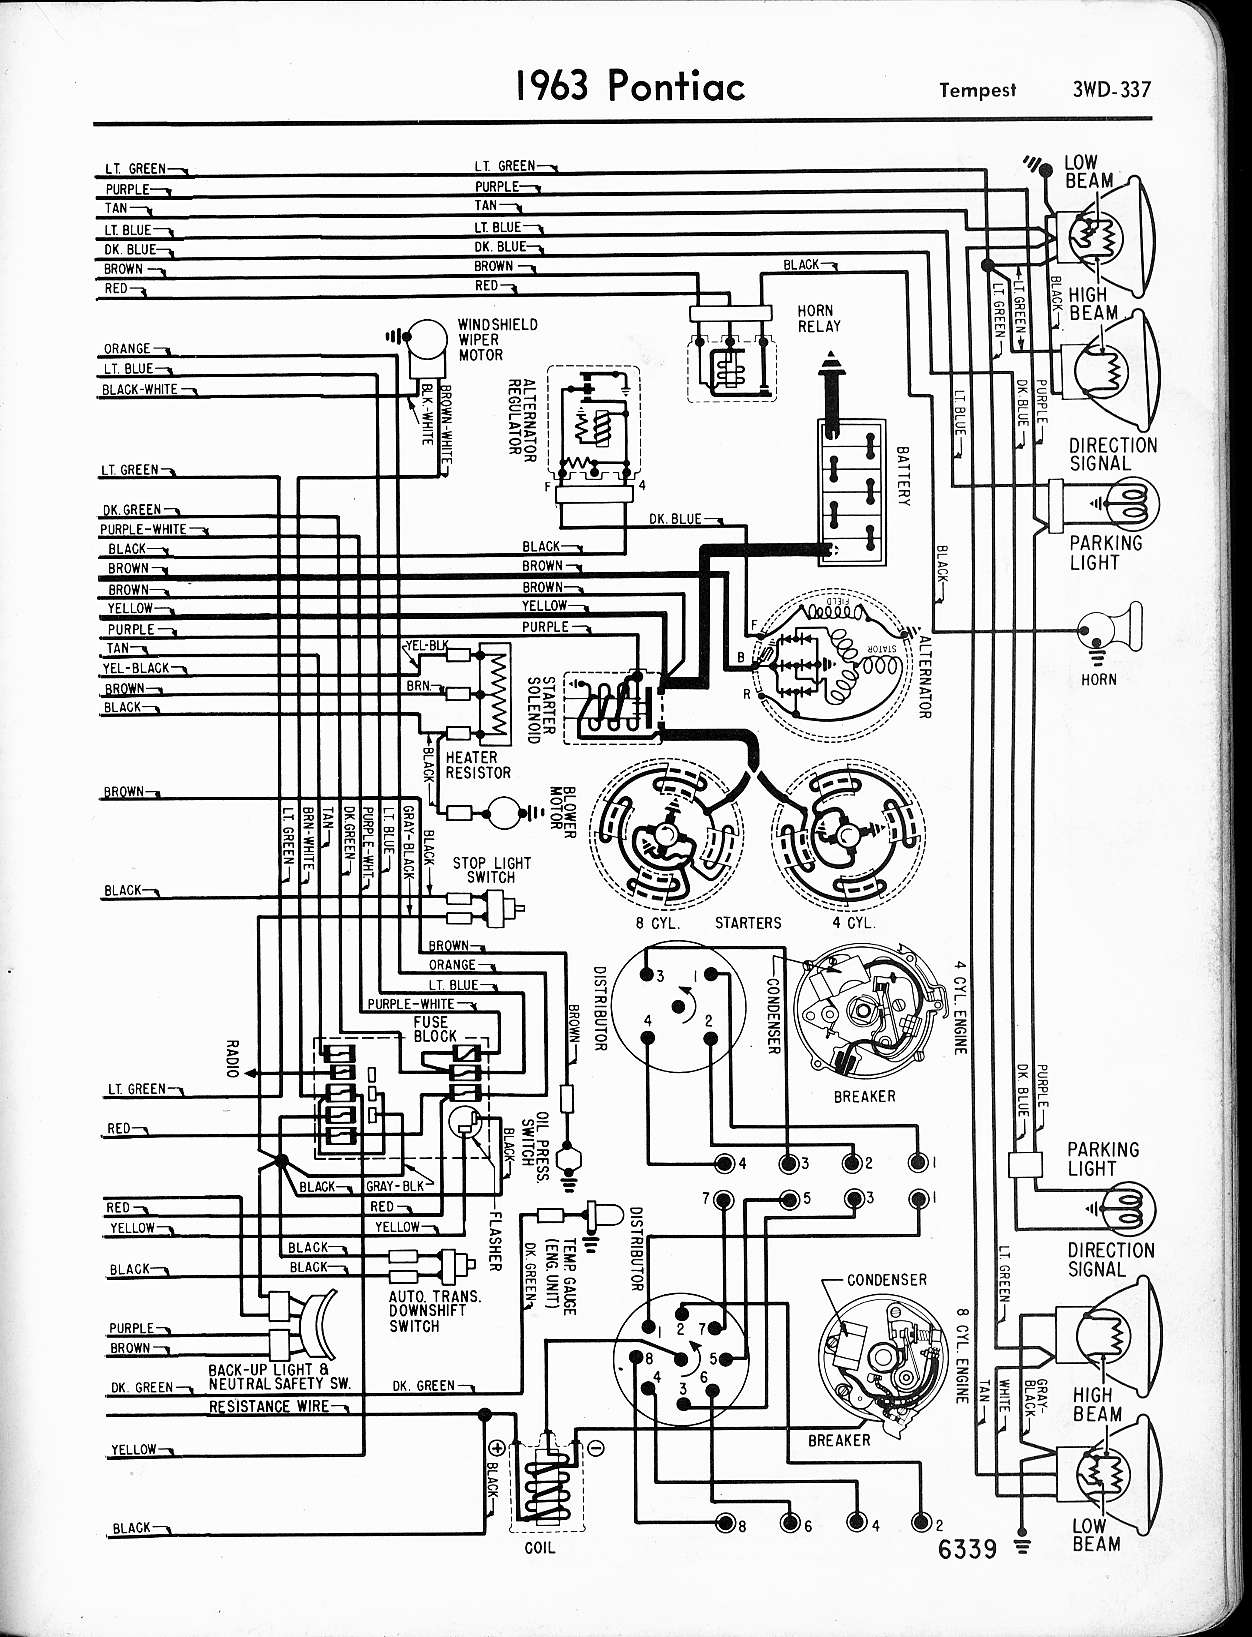 2010 mitsubishi lancer stereo wiring diagram with Mitsubishi Lancer Radio Wiring Colors on 1998 Mitsubishi Eclipse Radio Wiring Diagram furthermore 1999 Mitsubishi Eclipse Wiring Diagram moreover Engine Diagram 2001 Mitsubishi Galant Fuse Box additionally Rockford Fosgate Car Stereo Wiring Diagram 2002 also Nissan Maxima Ignition Switch.